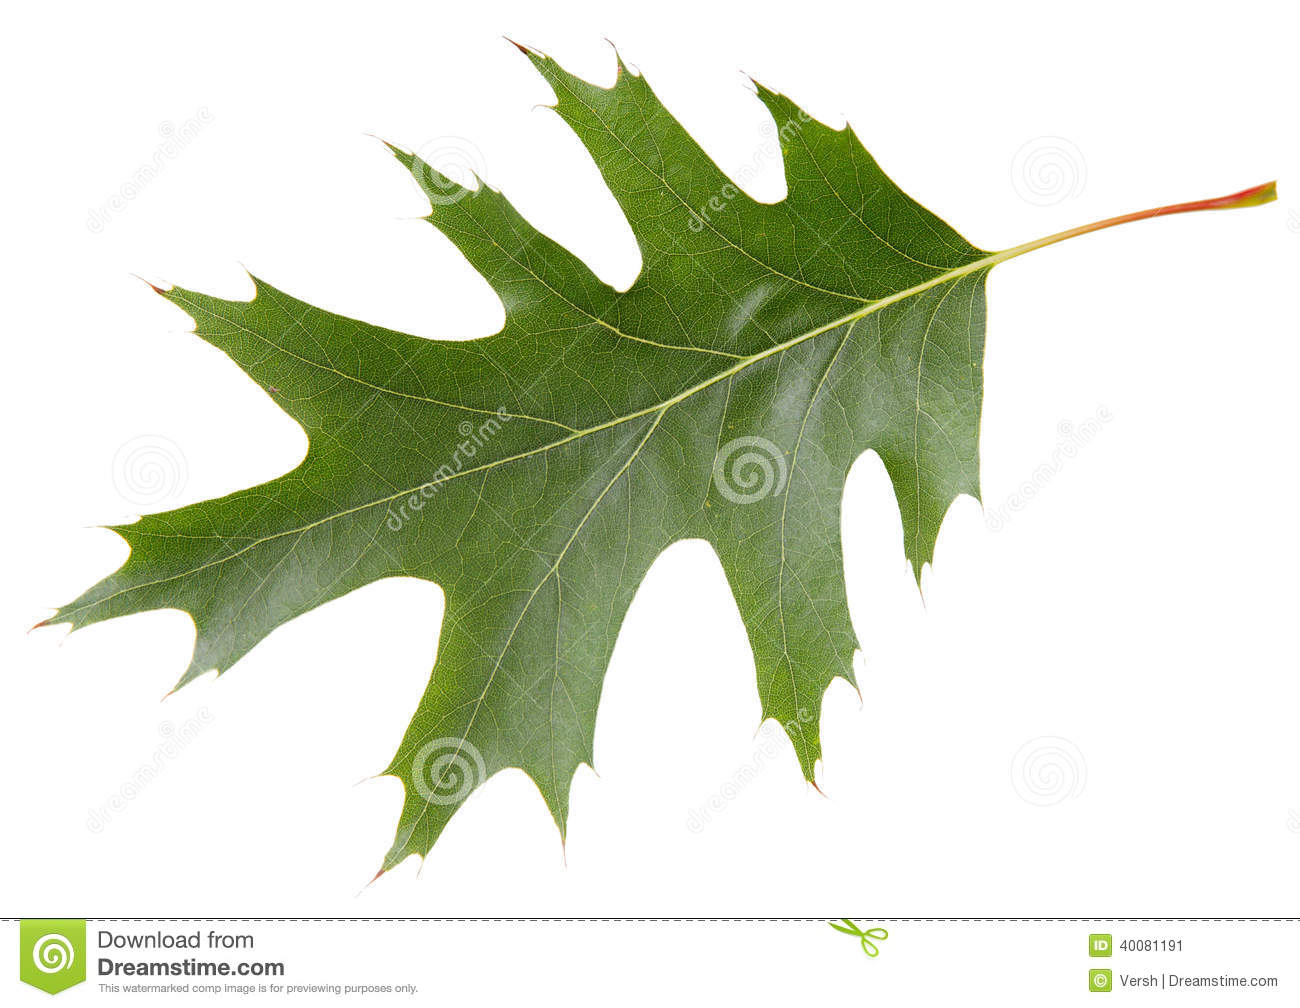 Red Oak Leaf ~ Green leaf of red oak tree isolated on white background